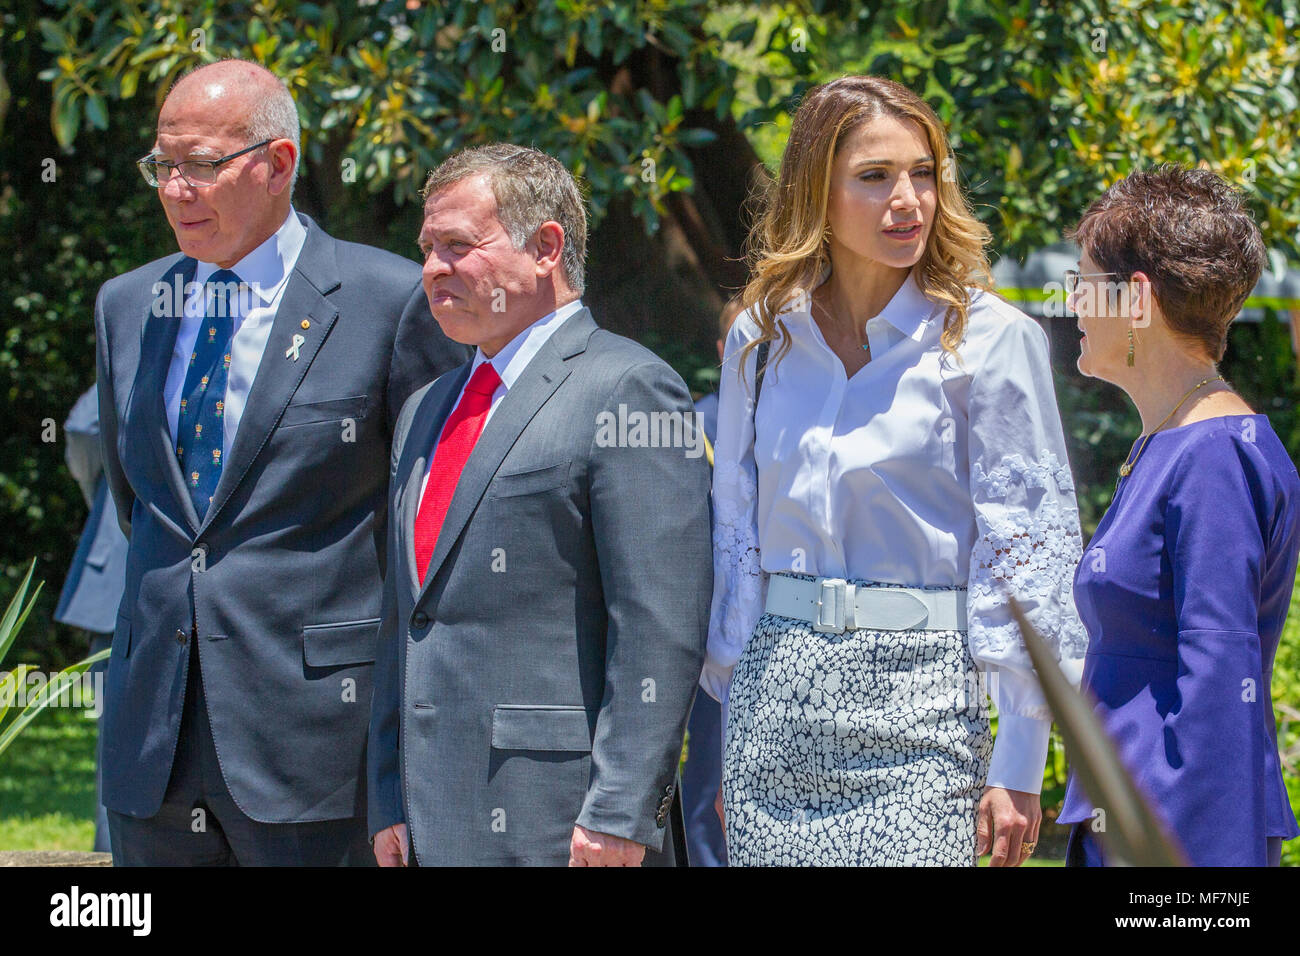 Their Majesties King Abdullah II bin Al-Hussein and Queen Rania Al-Abdullah of Jordan at Government House in Sydney as part of the Royal visit to Australia in November 2016. Stock Photo